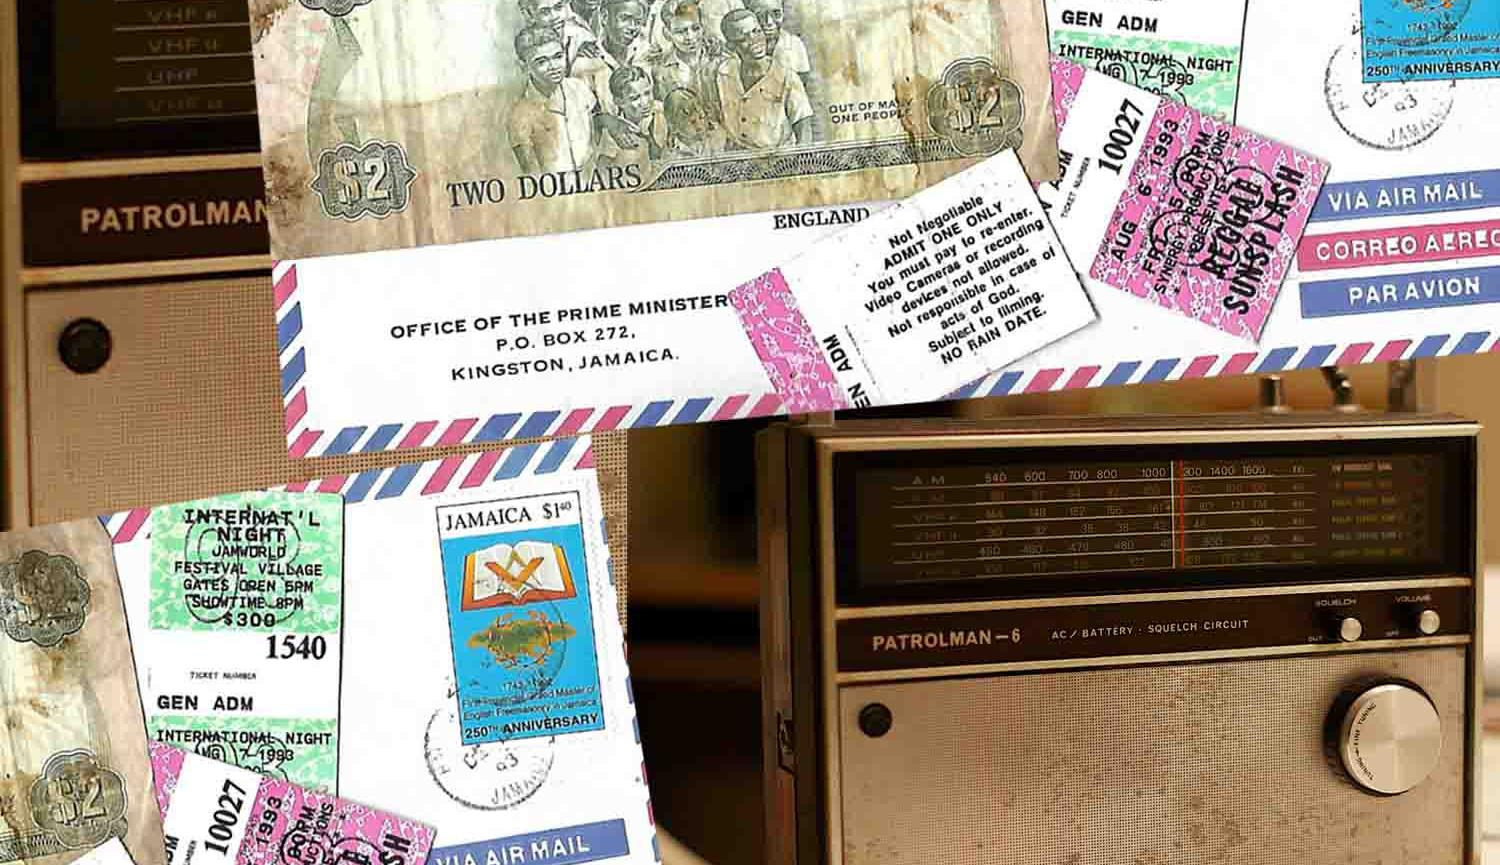 Sepia photo of old radio, image of air mail envelope with stamp, Jamaican two dollar note and tickets